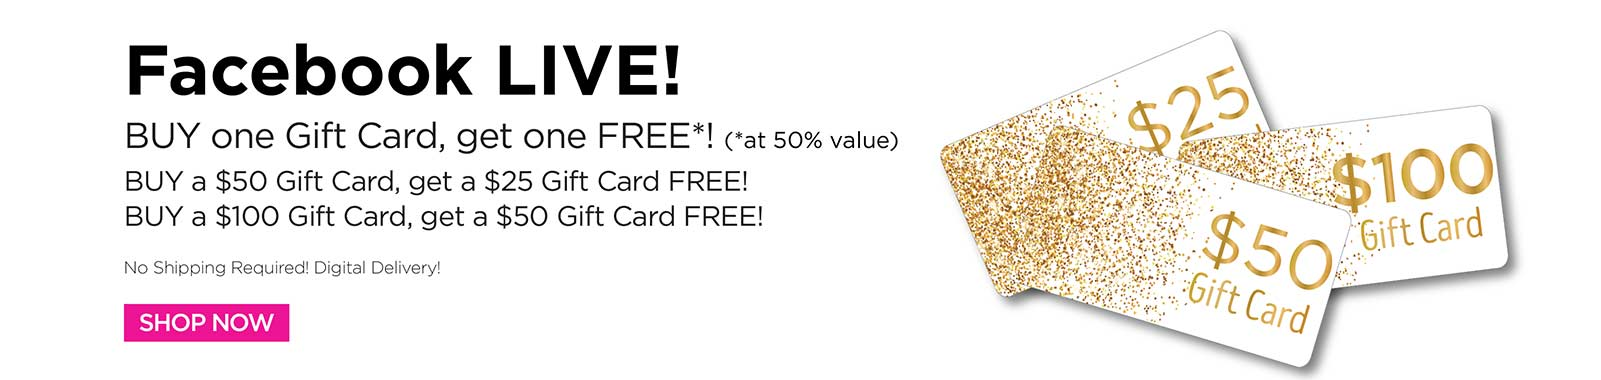 Buy One Gift Card Get One Free.